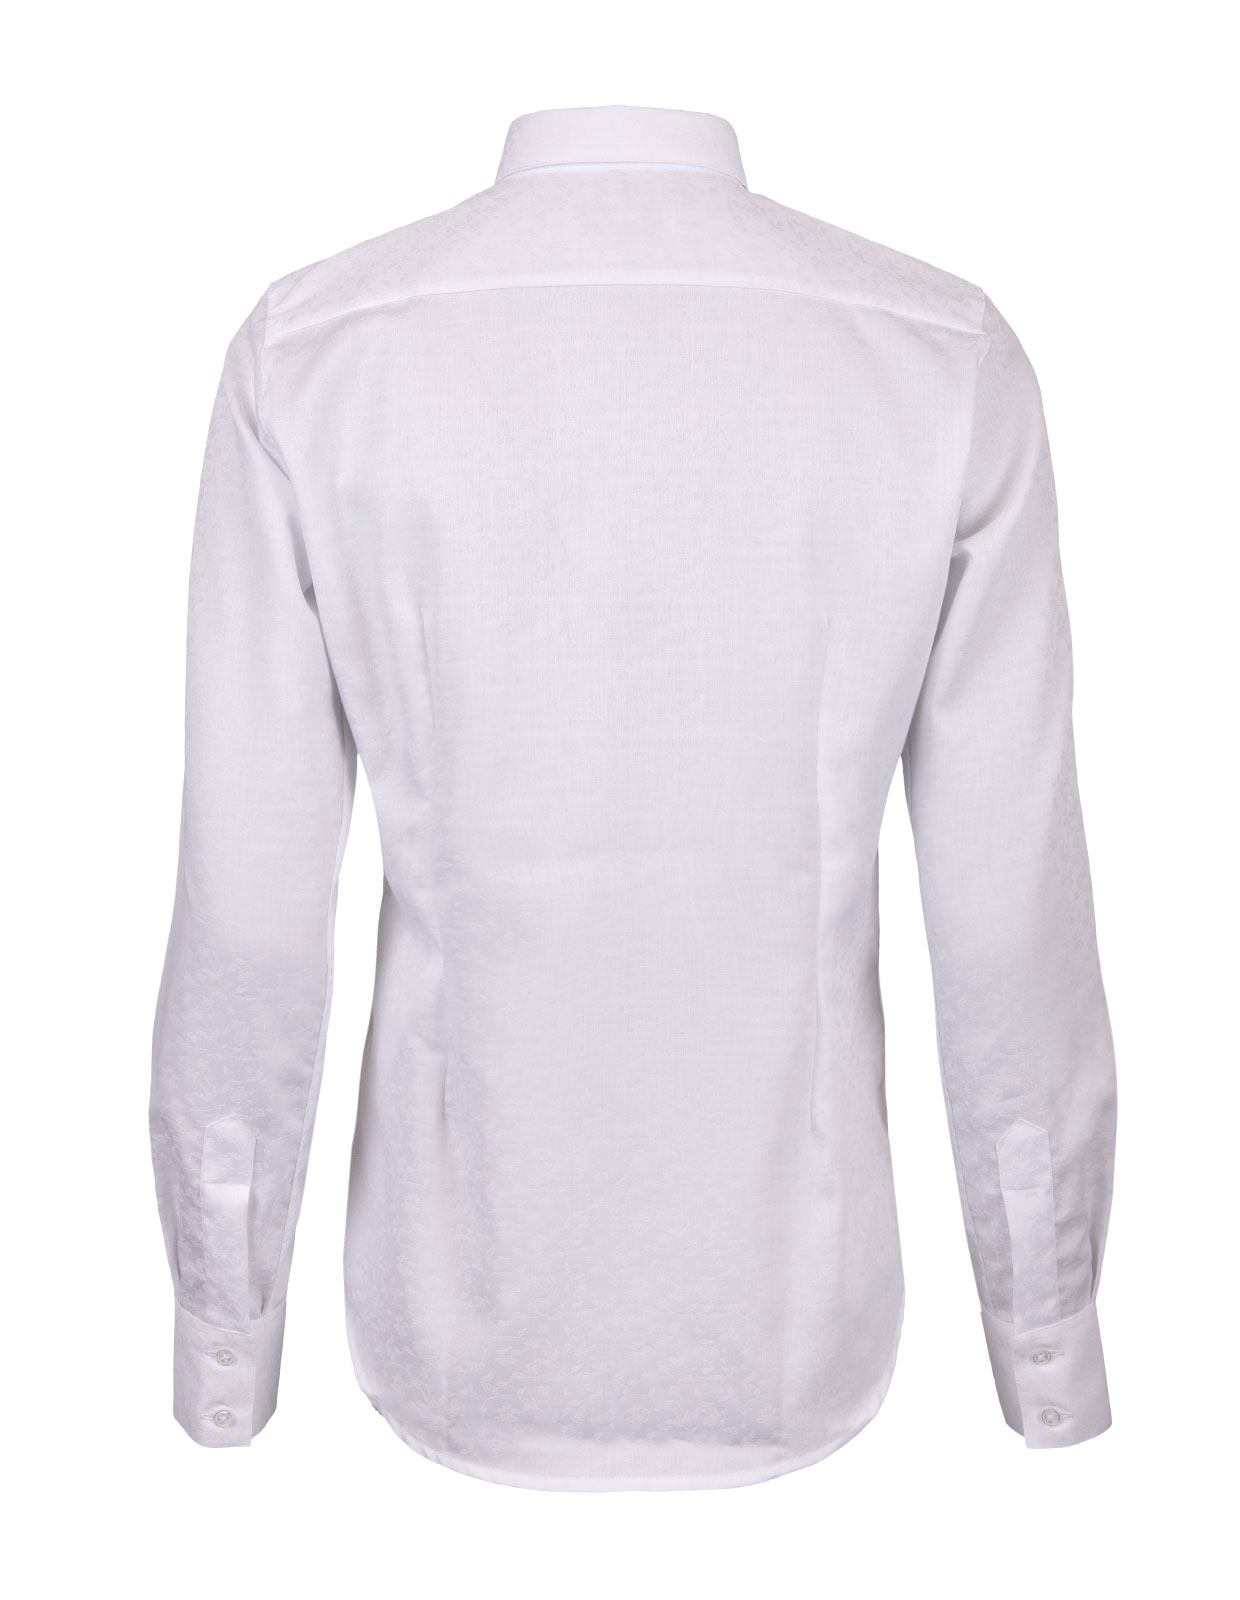 Cotton Shirt Long Sleeve White Paisley